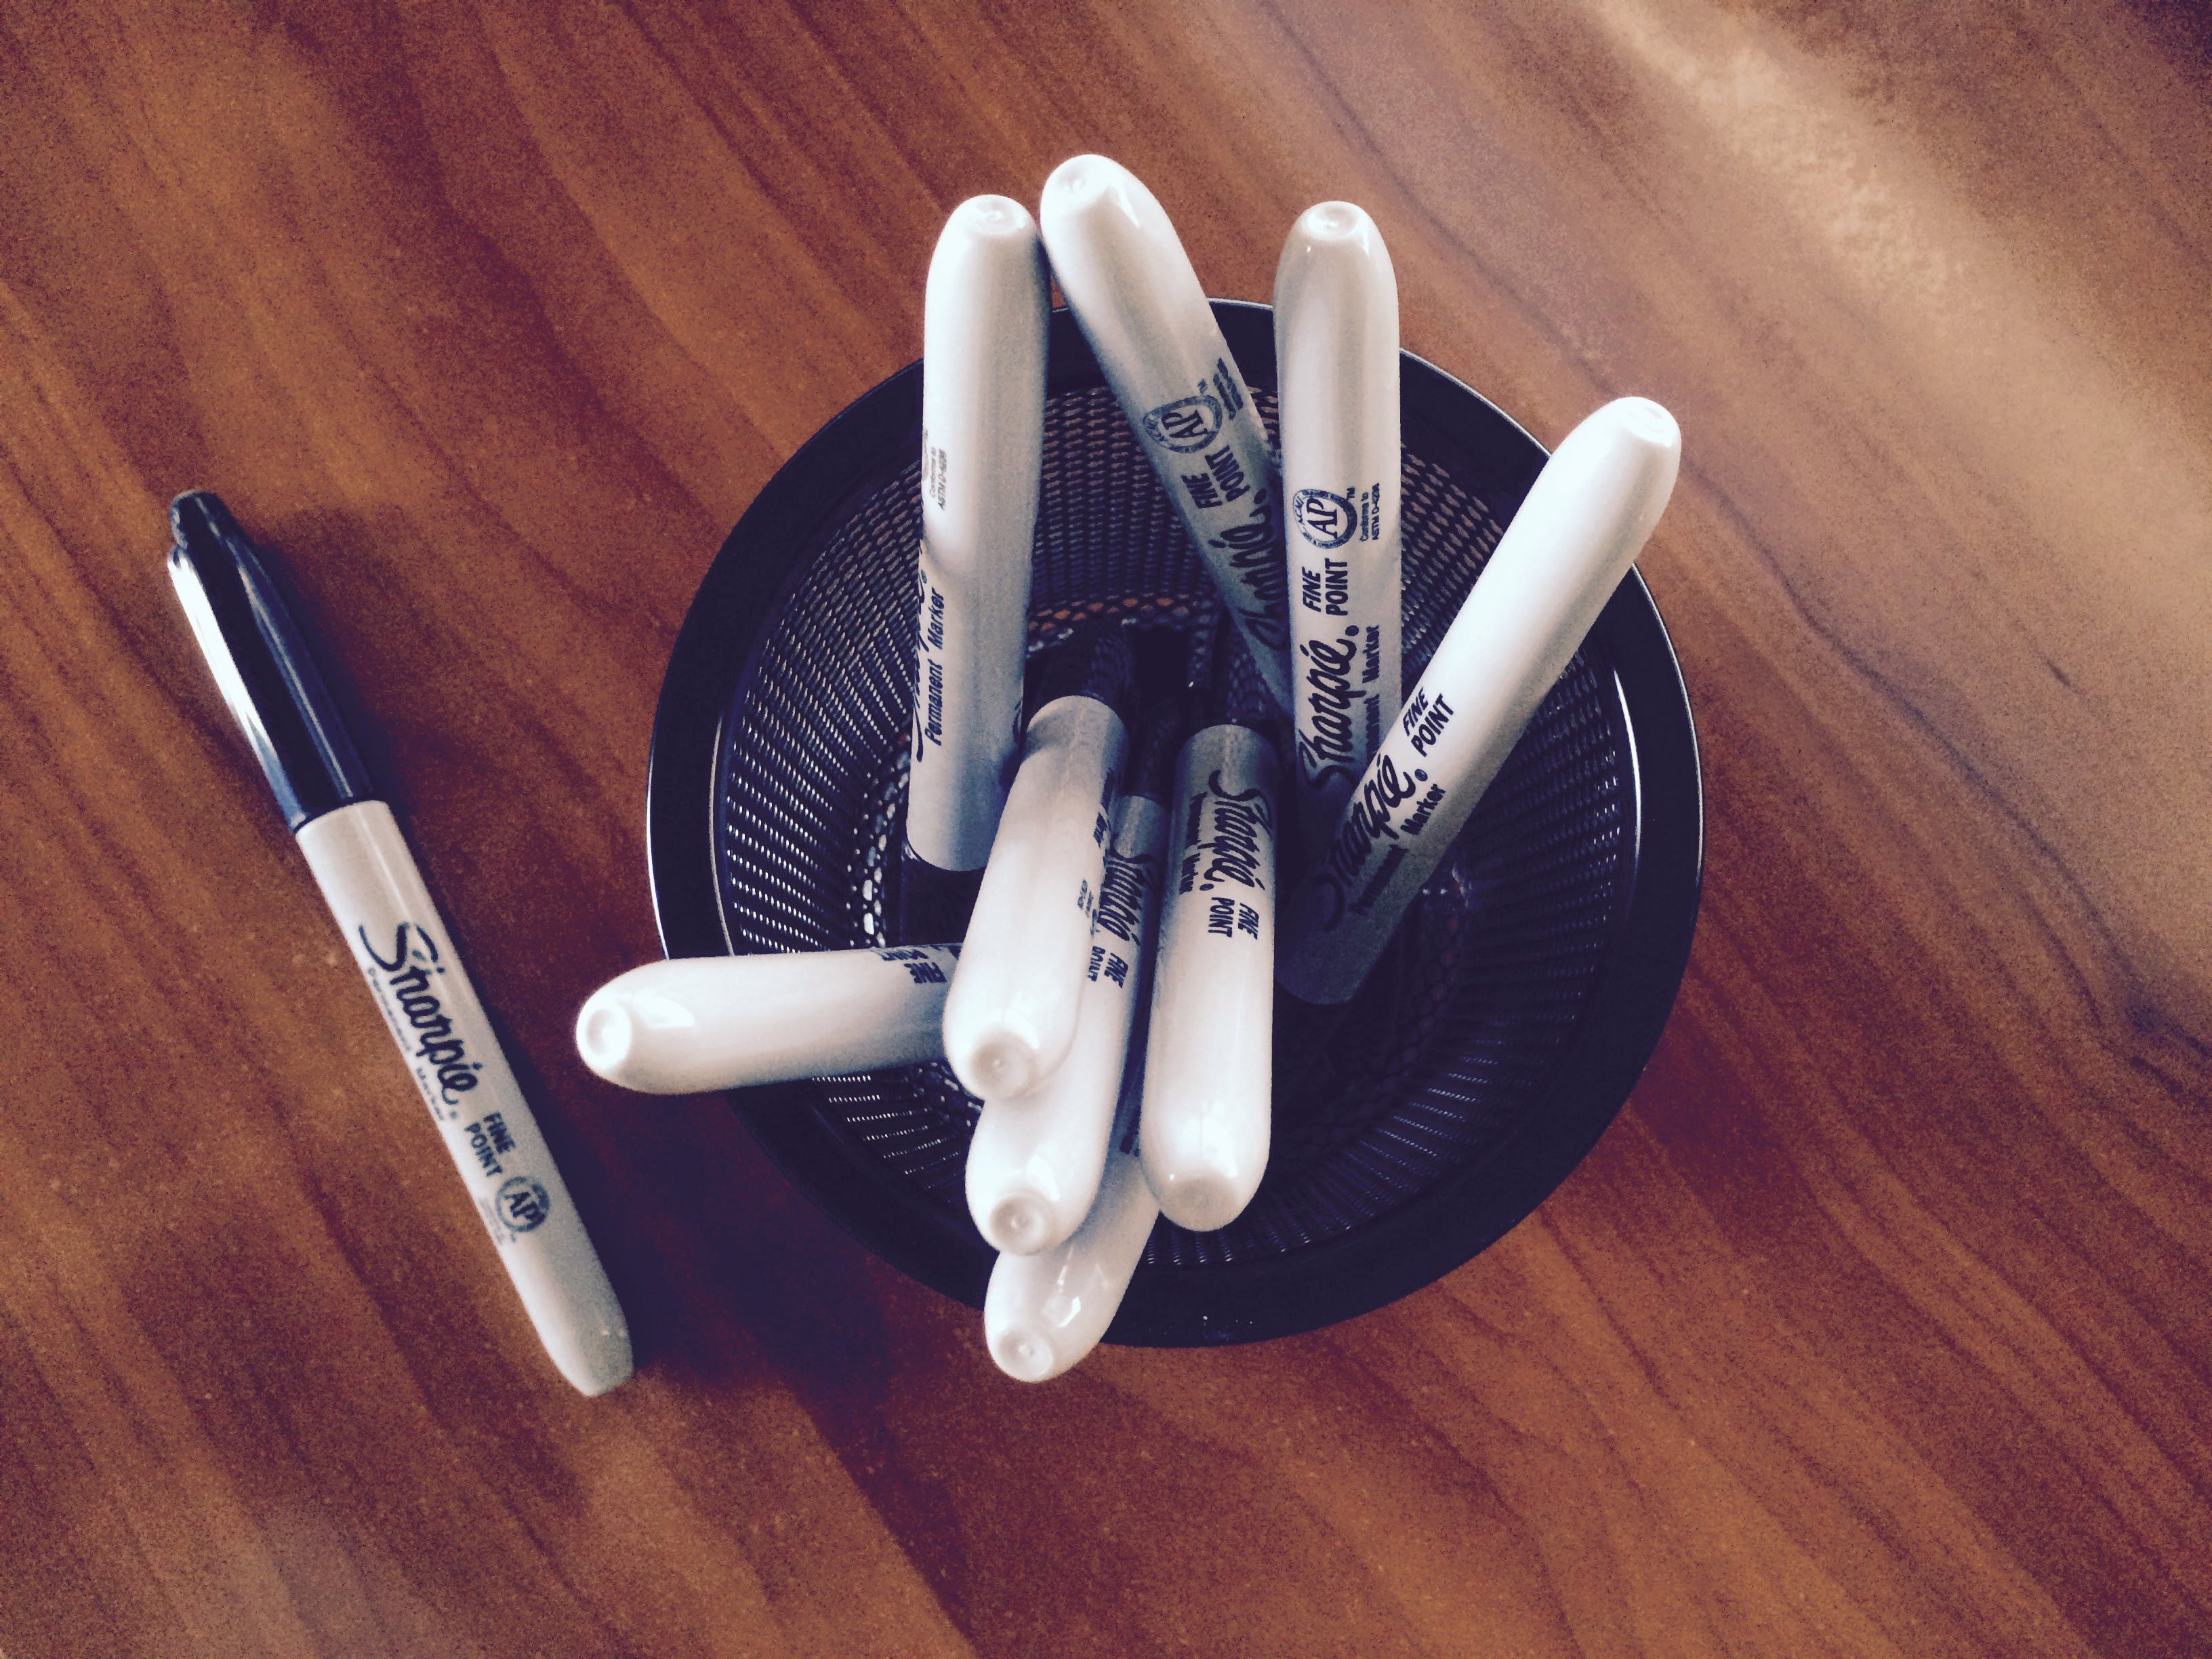 White Sharpie Markets on Table